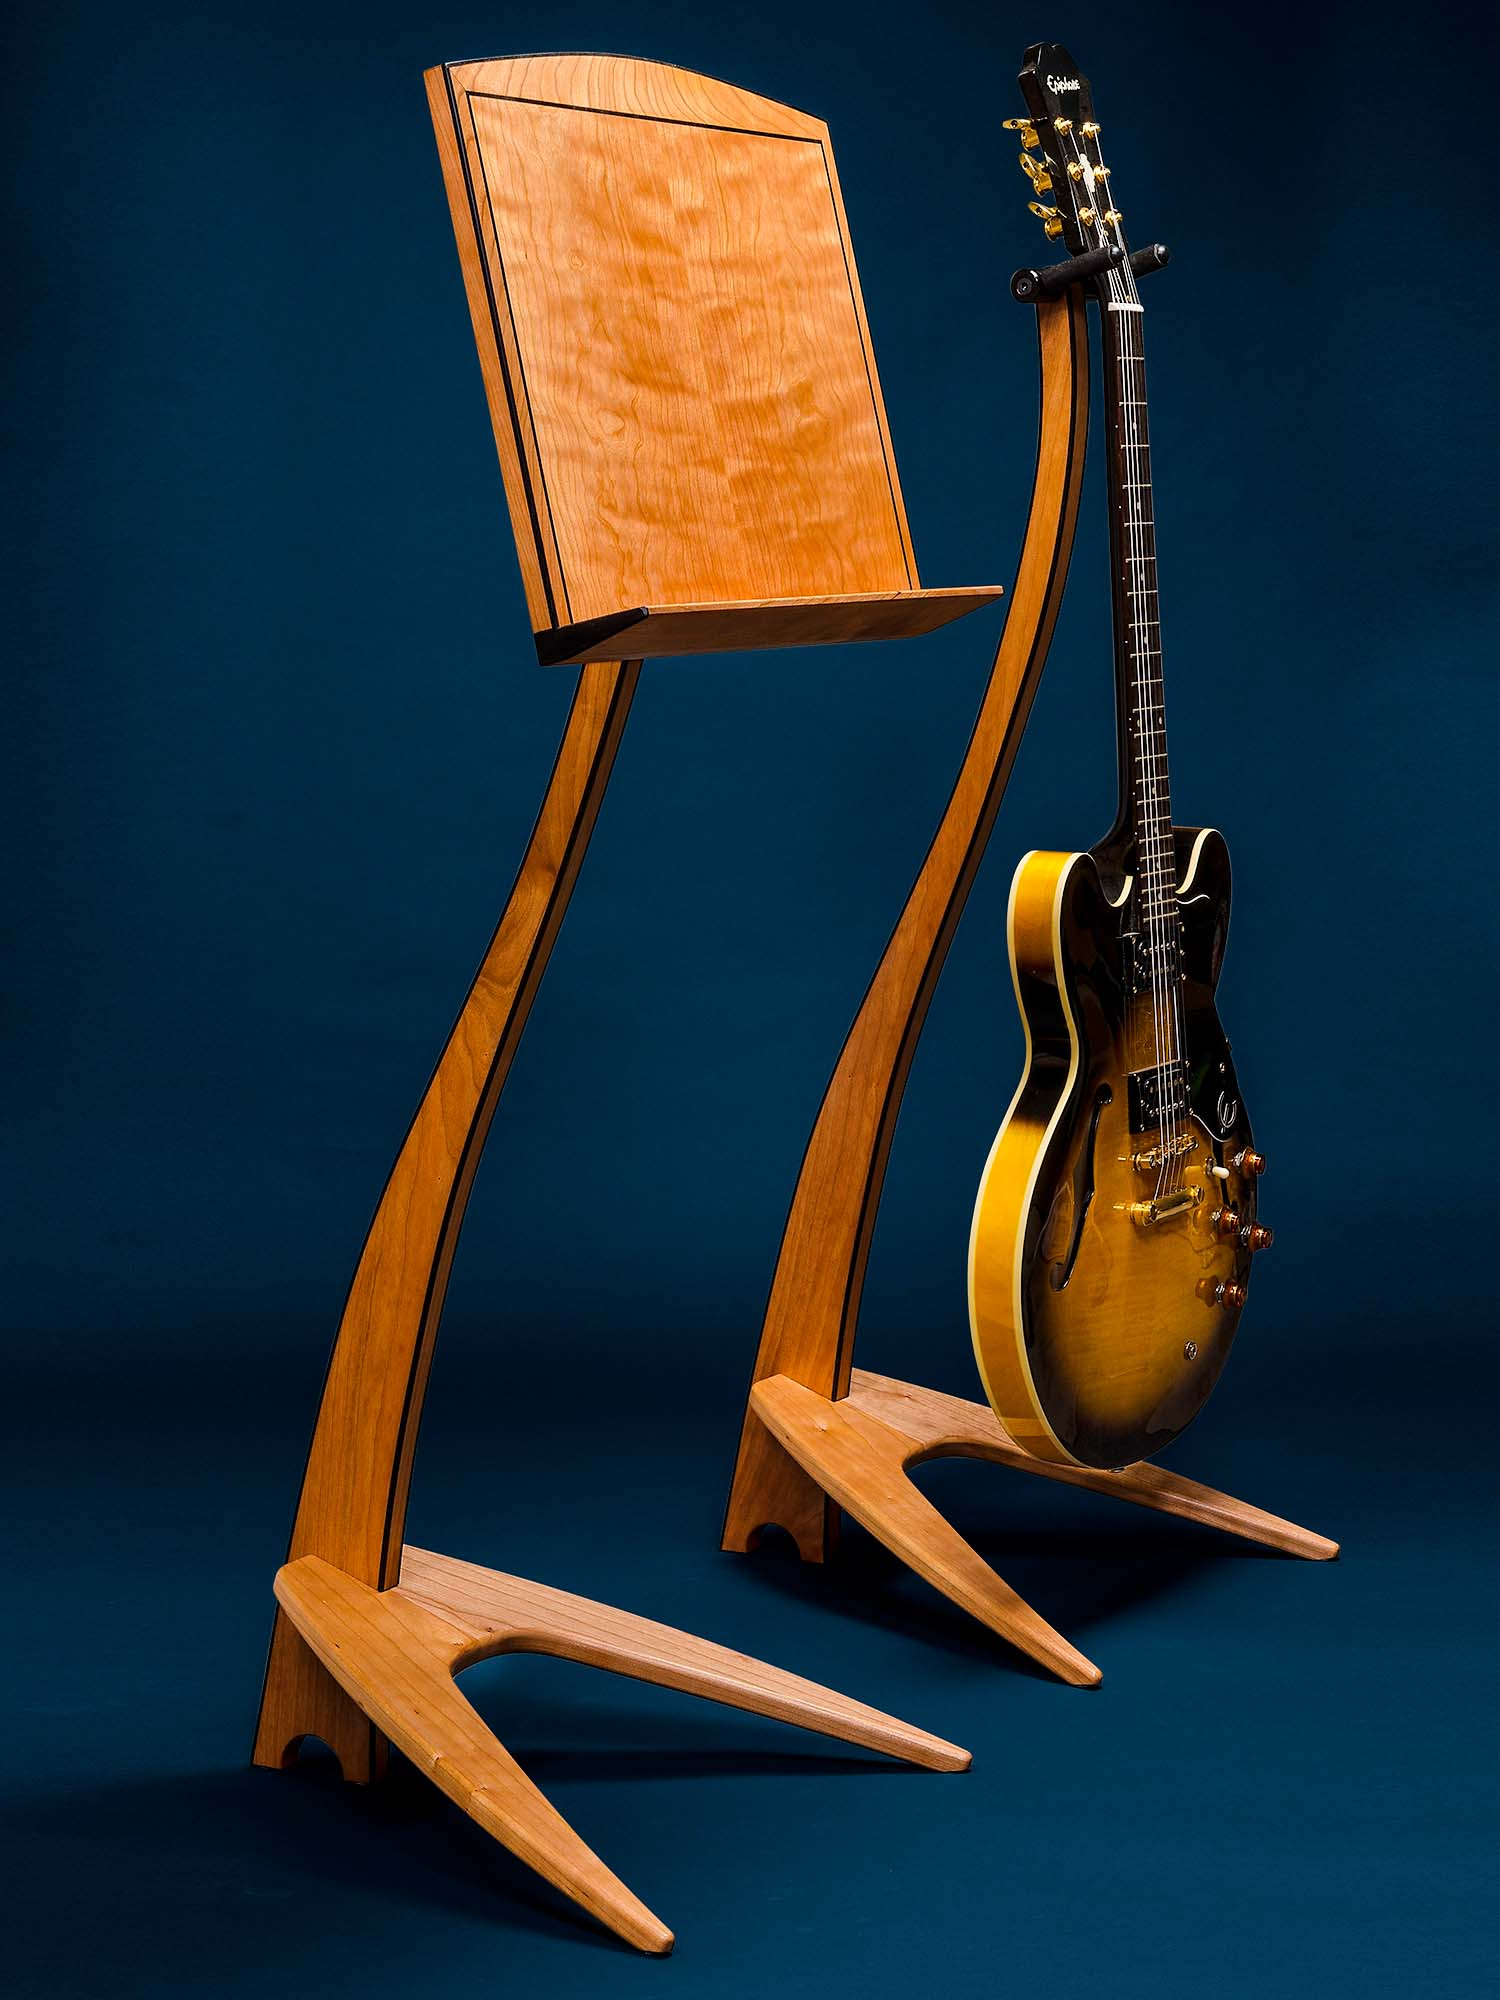 WM Cherry Music and Guitar Stands